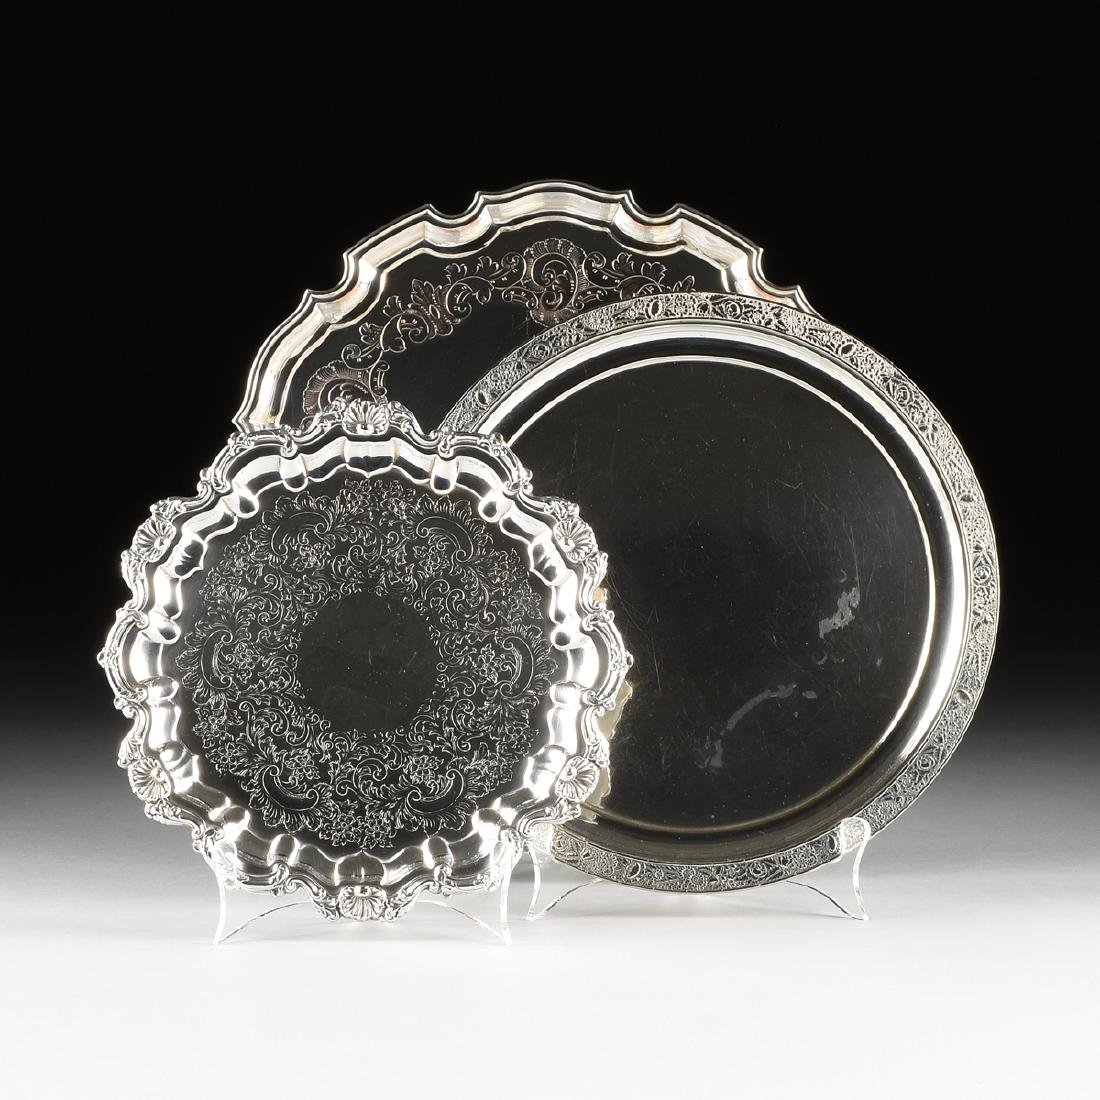 A GROUP OF THREE SILVER PLATED SERVING TRAYS, AMERICAN